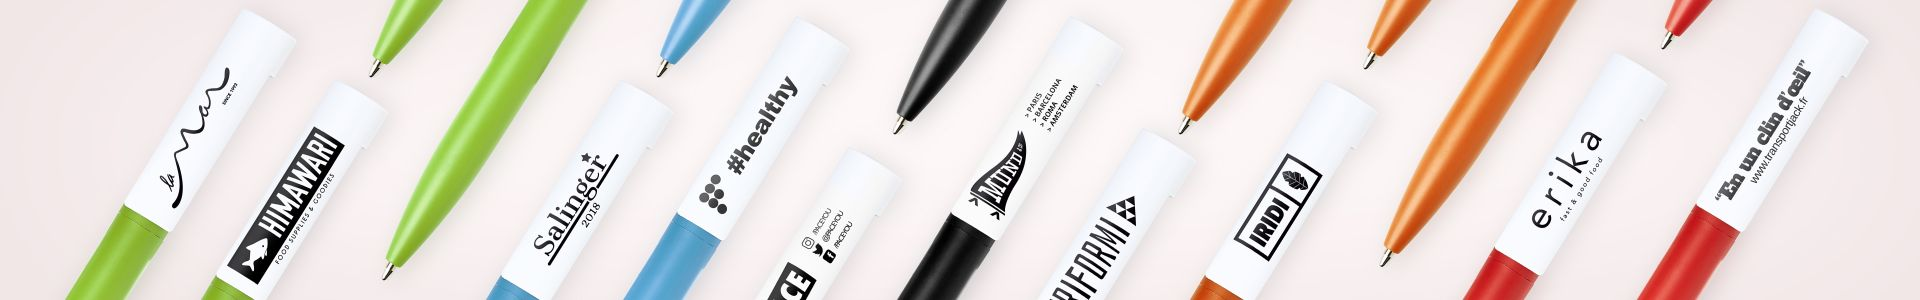 Stylos publicitaires | Camaloon